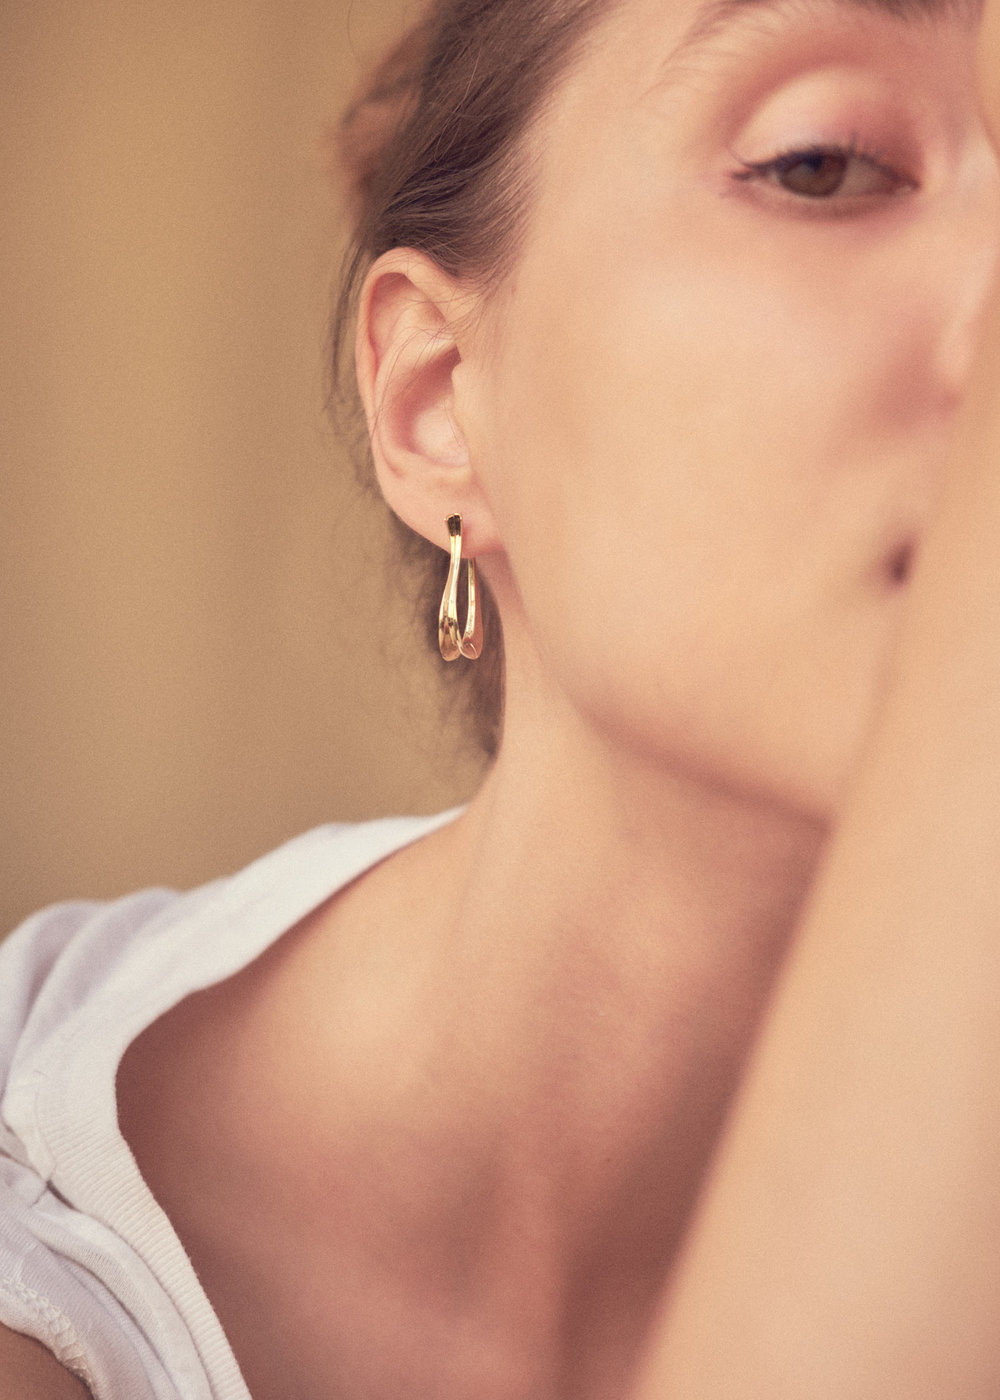 the Ophelia earrings